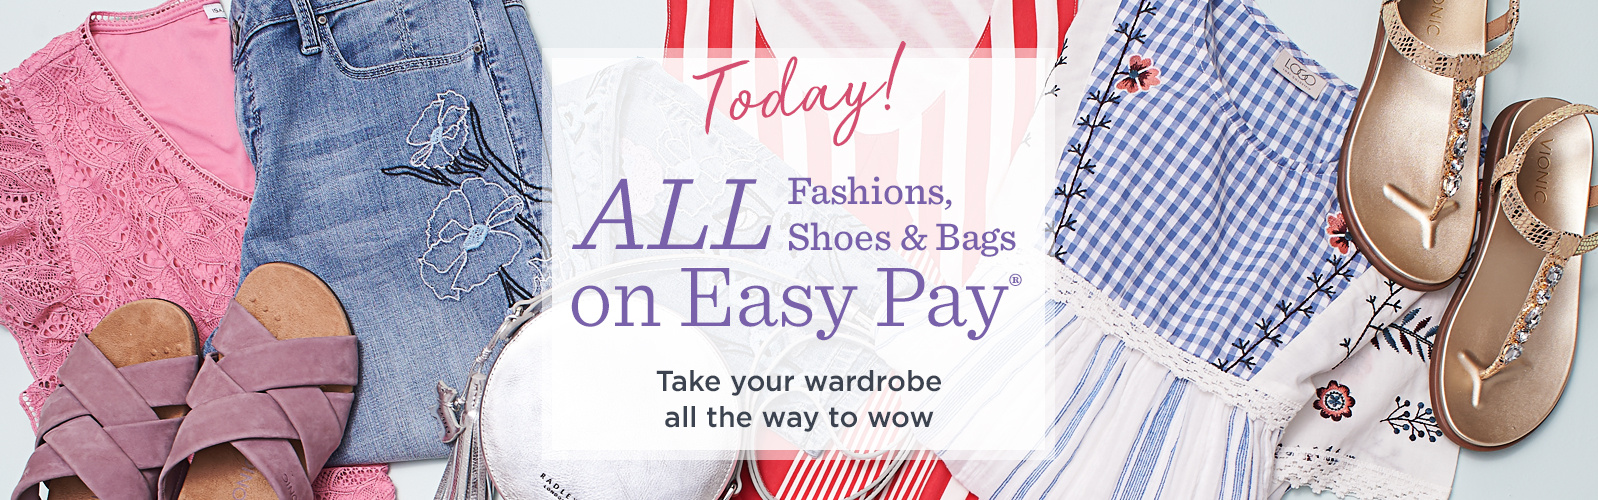 ALL Fashions, Shoes & Bags on Easy Pay® — Today! Take your wardrobe all the way to wow